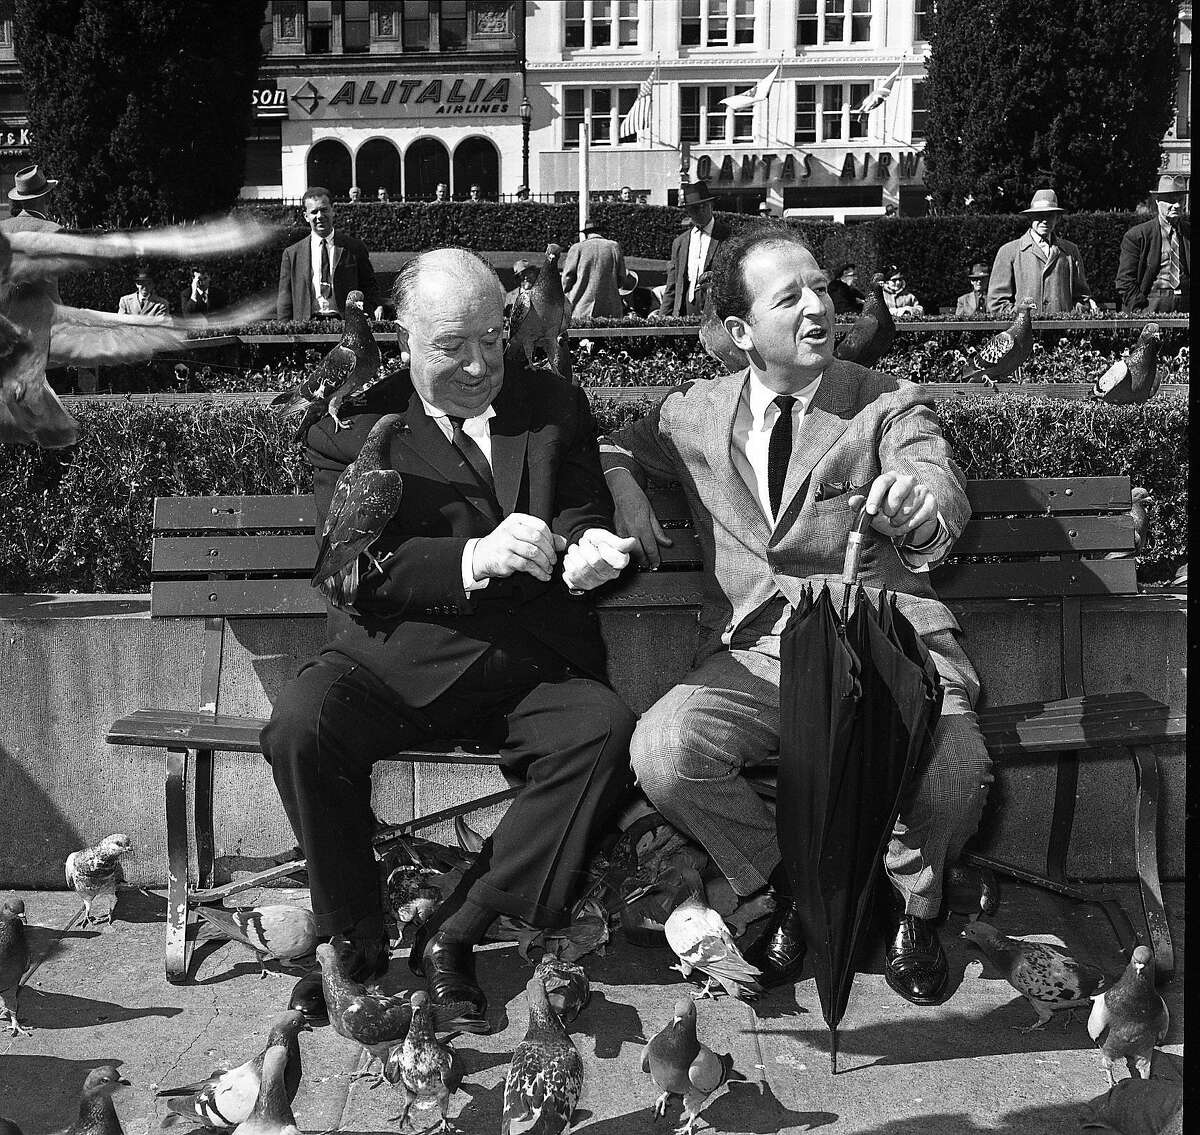 April 1, 1963: Herb Caen and Alfred Hitchcock feed the pigeons in Union Square during a promotion for Hitchcock's movie